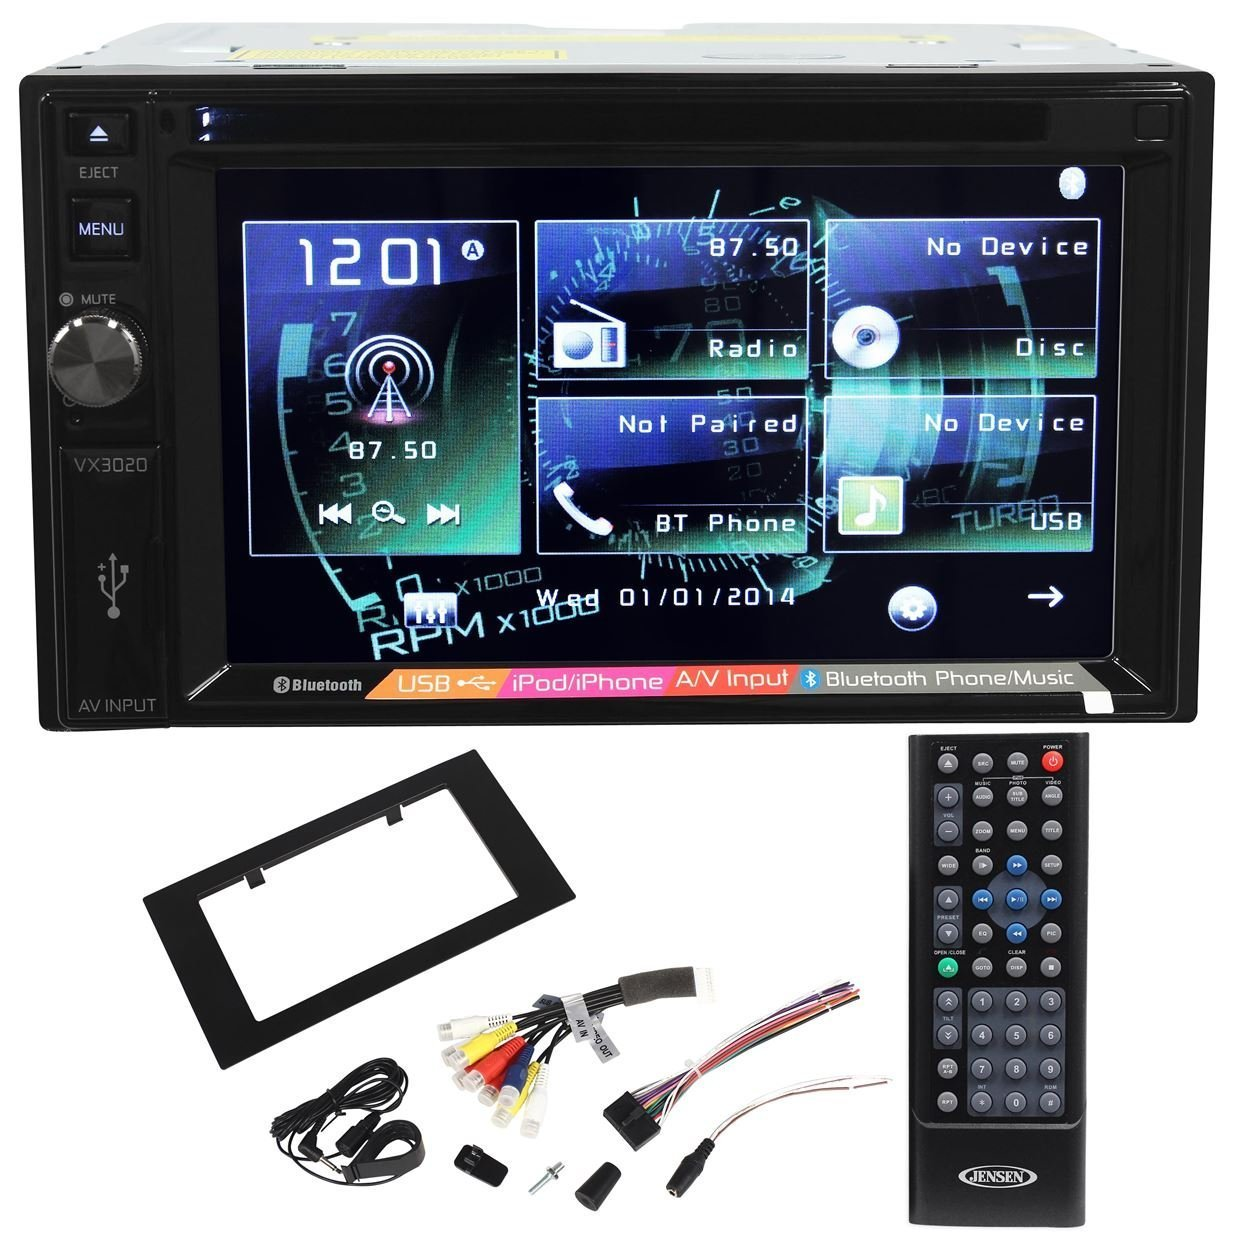 """Jensen VX3020 Double Din 6.2"""" In-Dash Car DVD Receiver With Bluetooth Music Streaming, AUX/USB Inputs, and iPod/iPhone/Android Integration"""